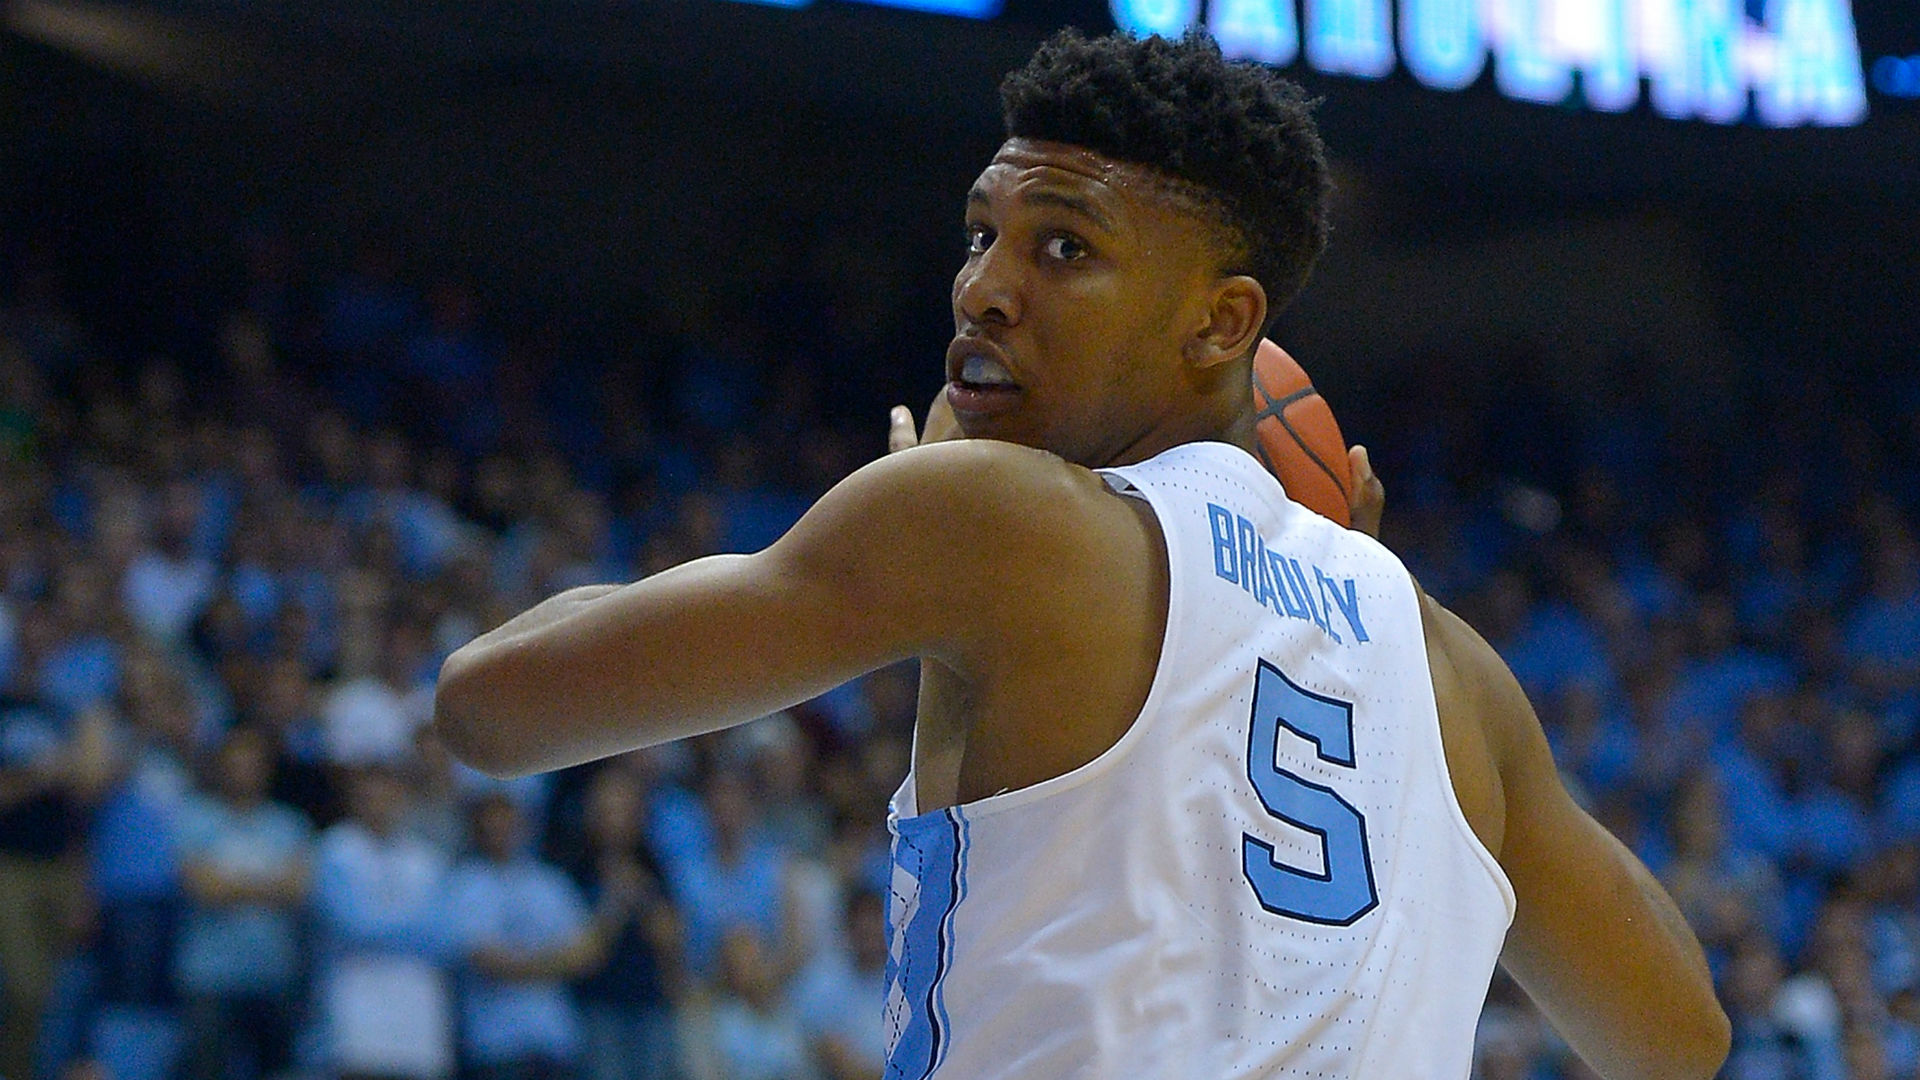 UNC's Tony Bradley to stay in National Basketball Association draft